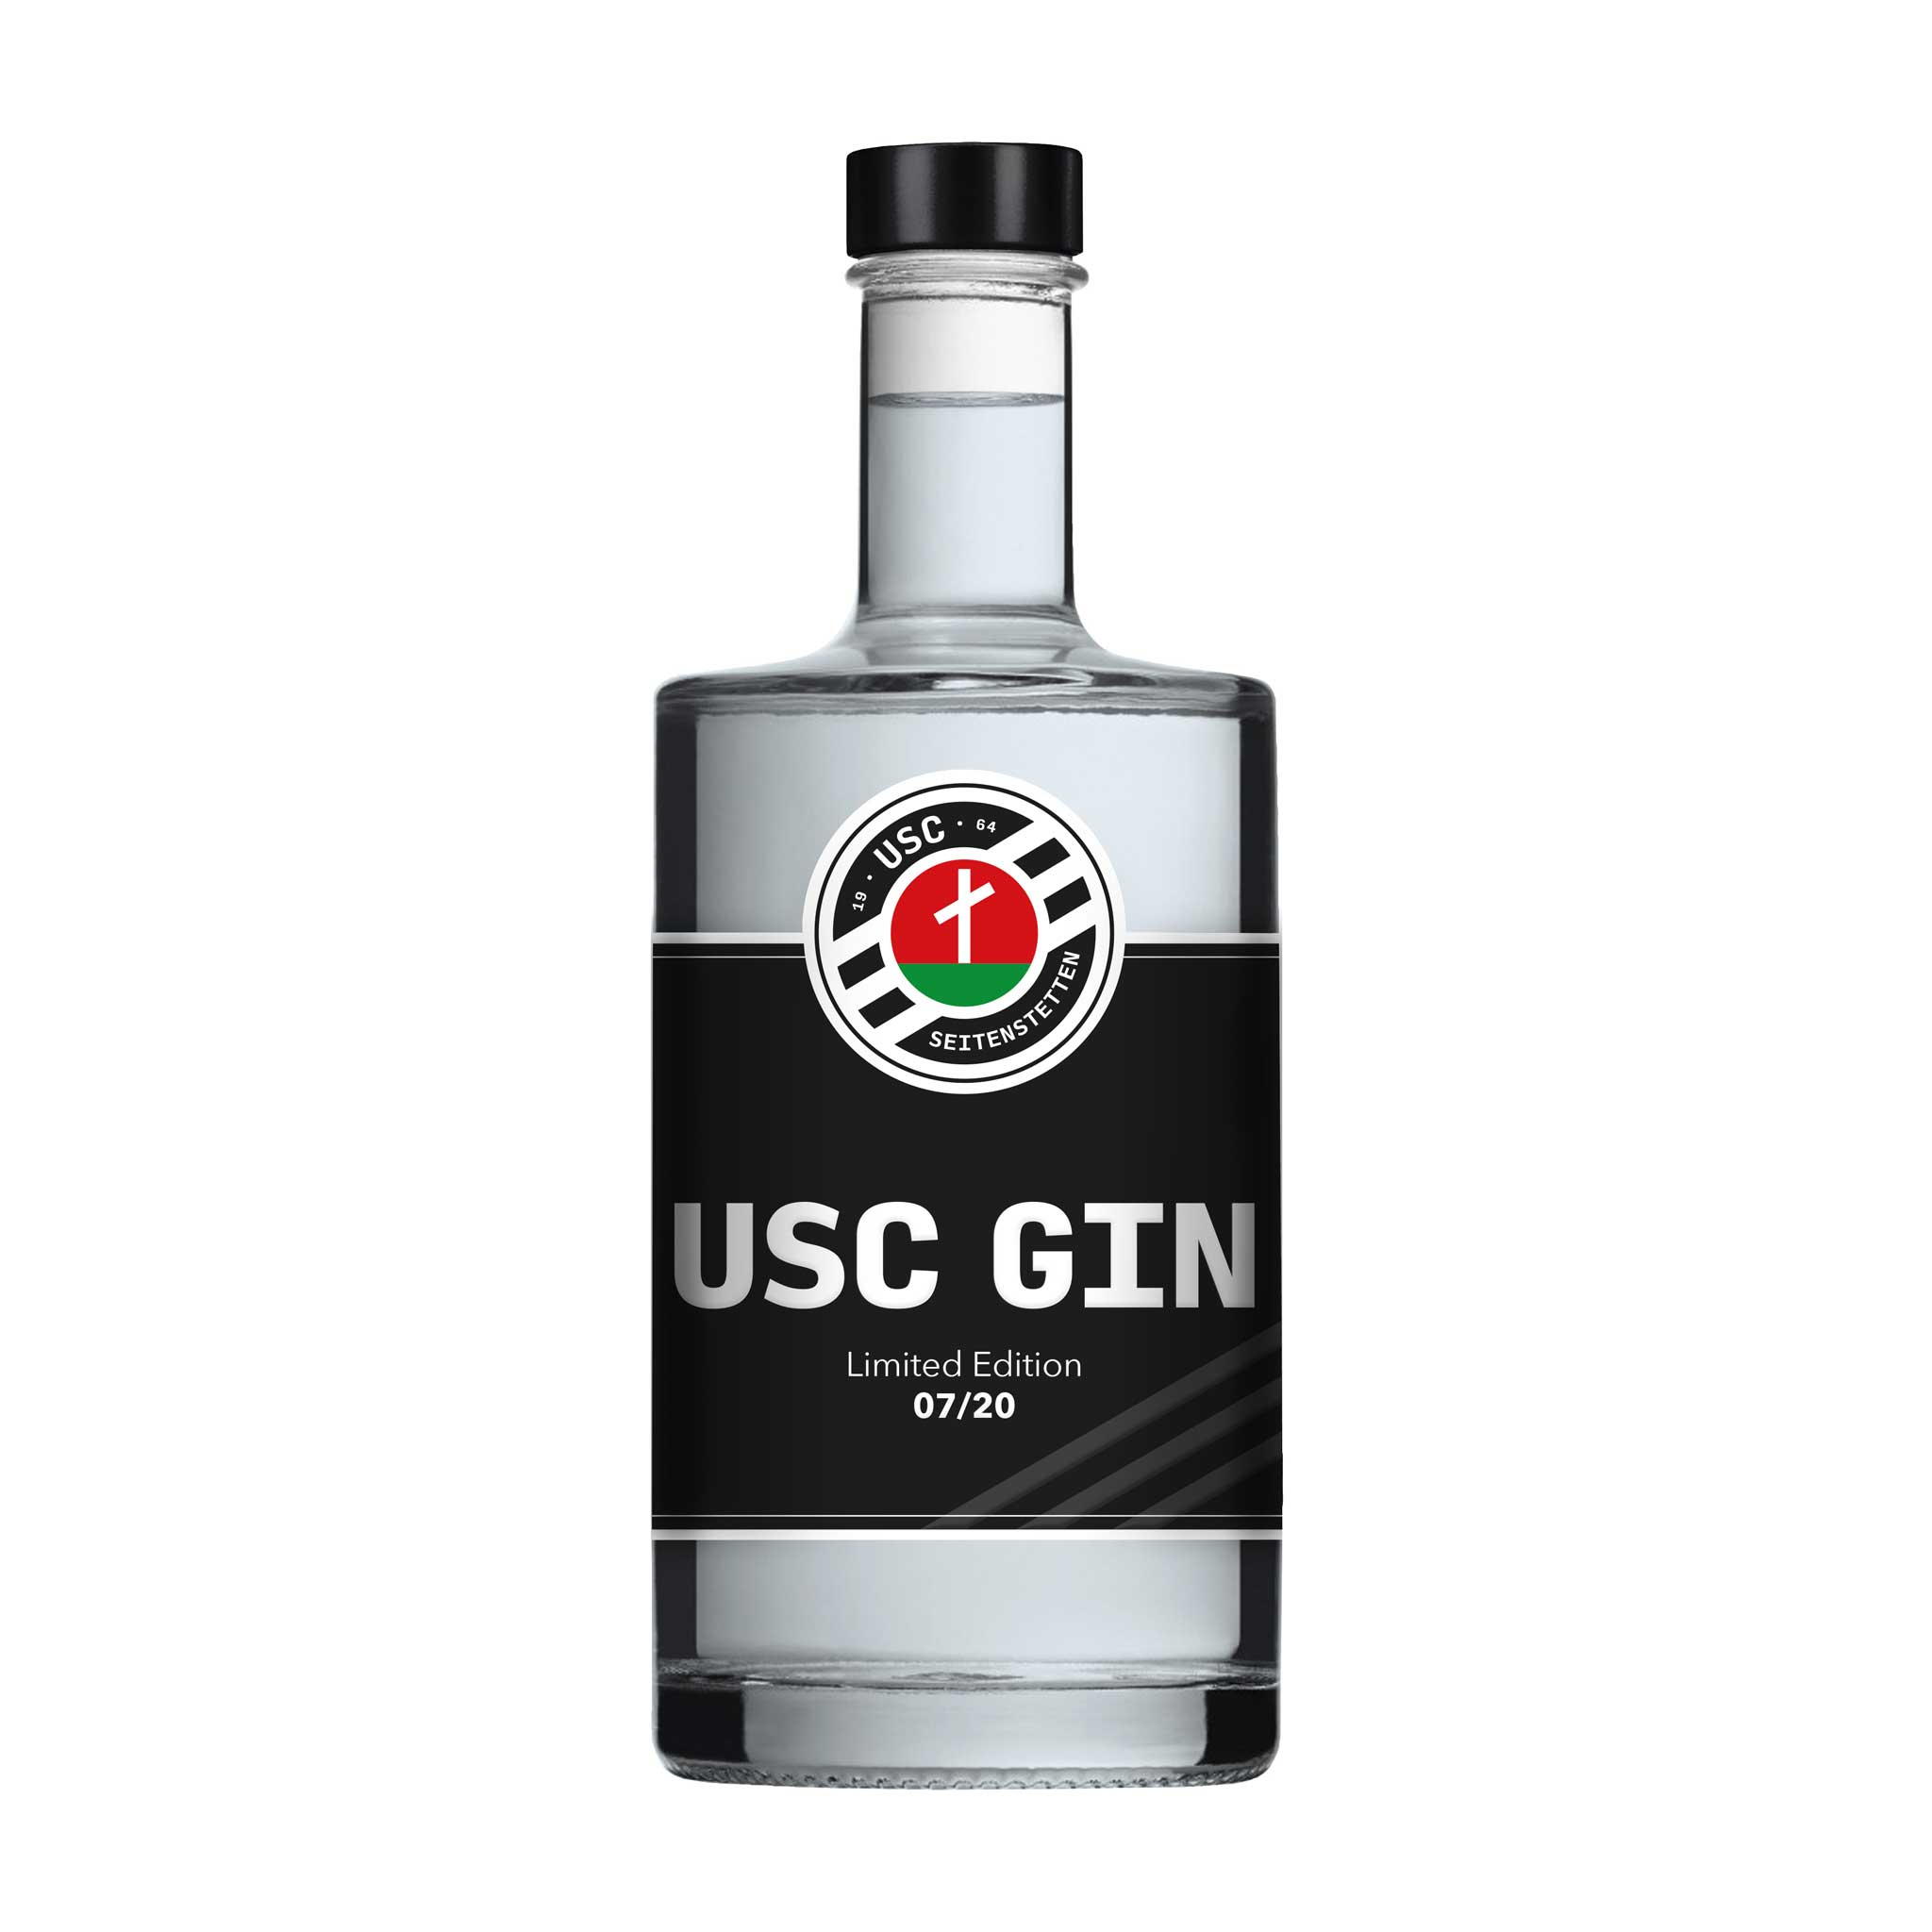 USC Gin Limited Edition 07/20 - Destillerie Farthofer